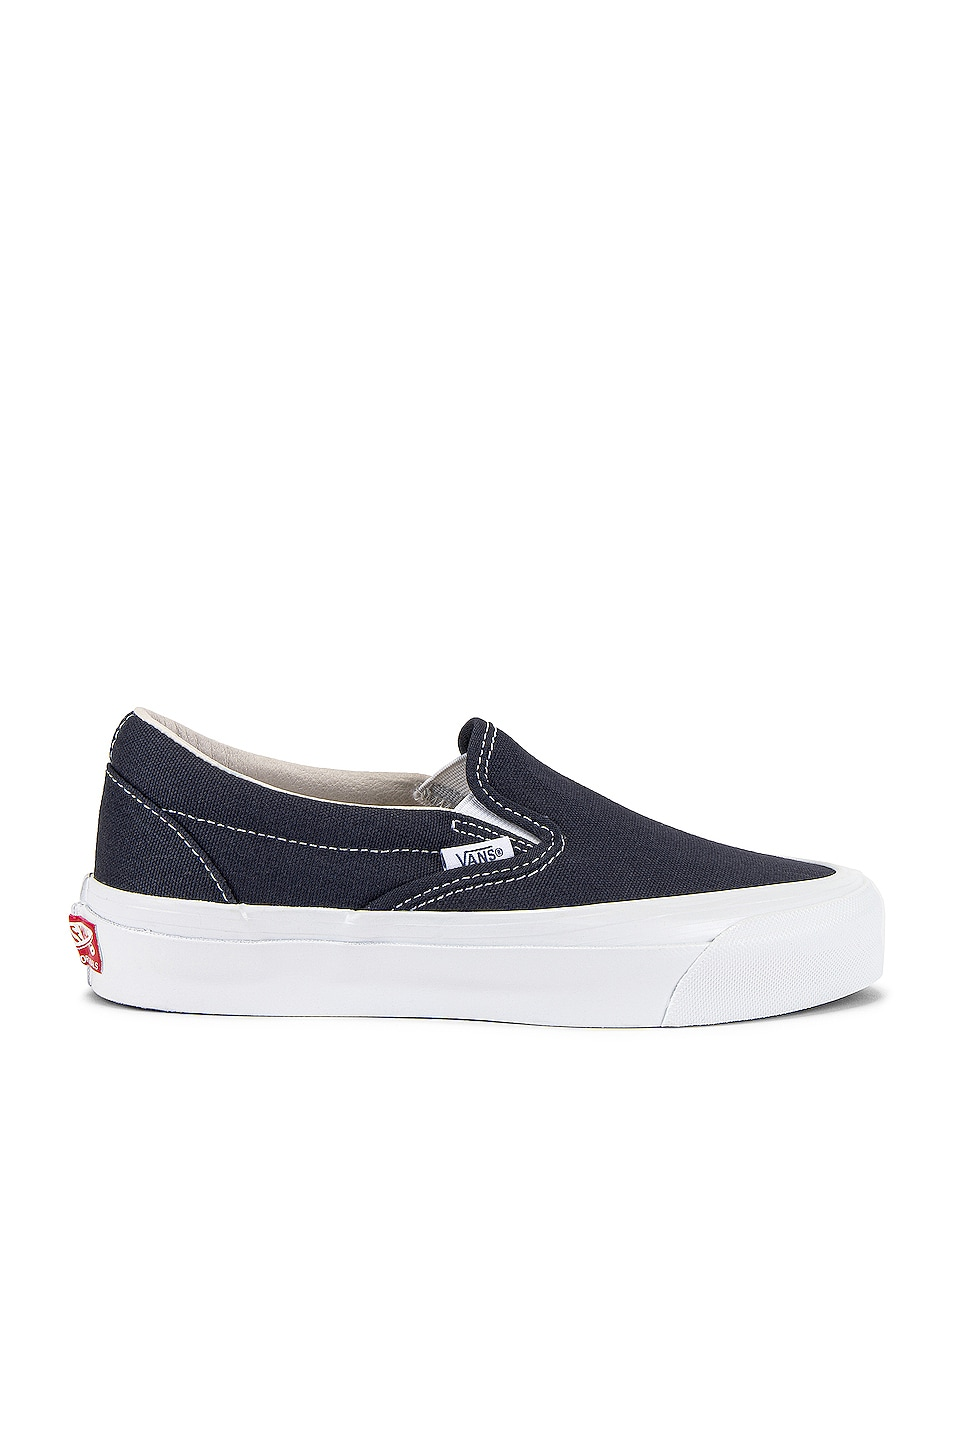 Image 1 of Vans Vault OG Classic Slip-On LX in Navy